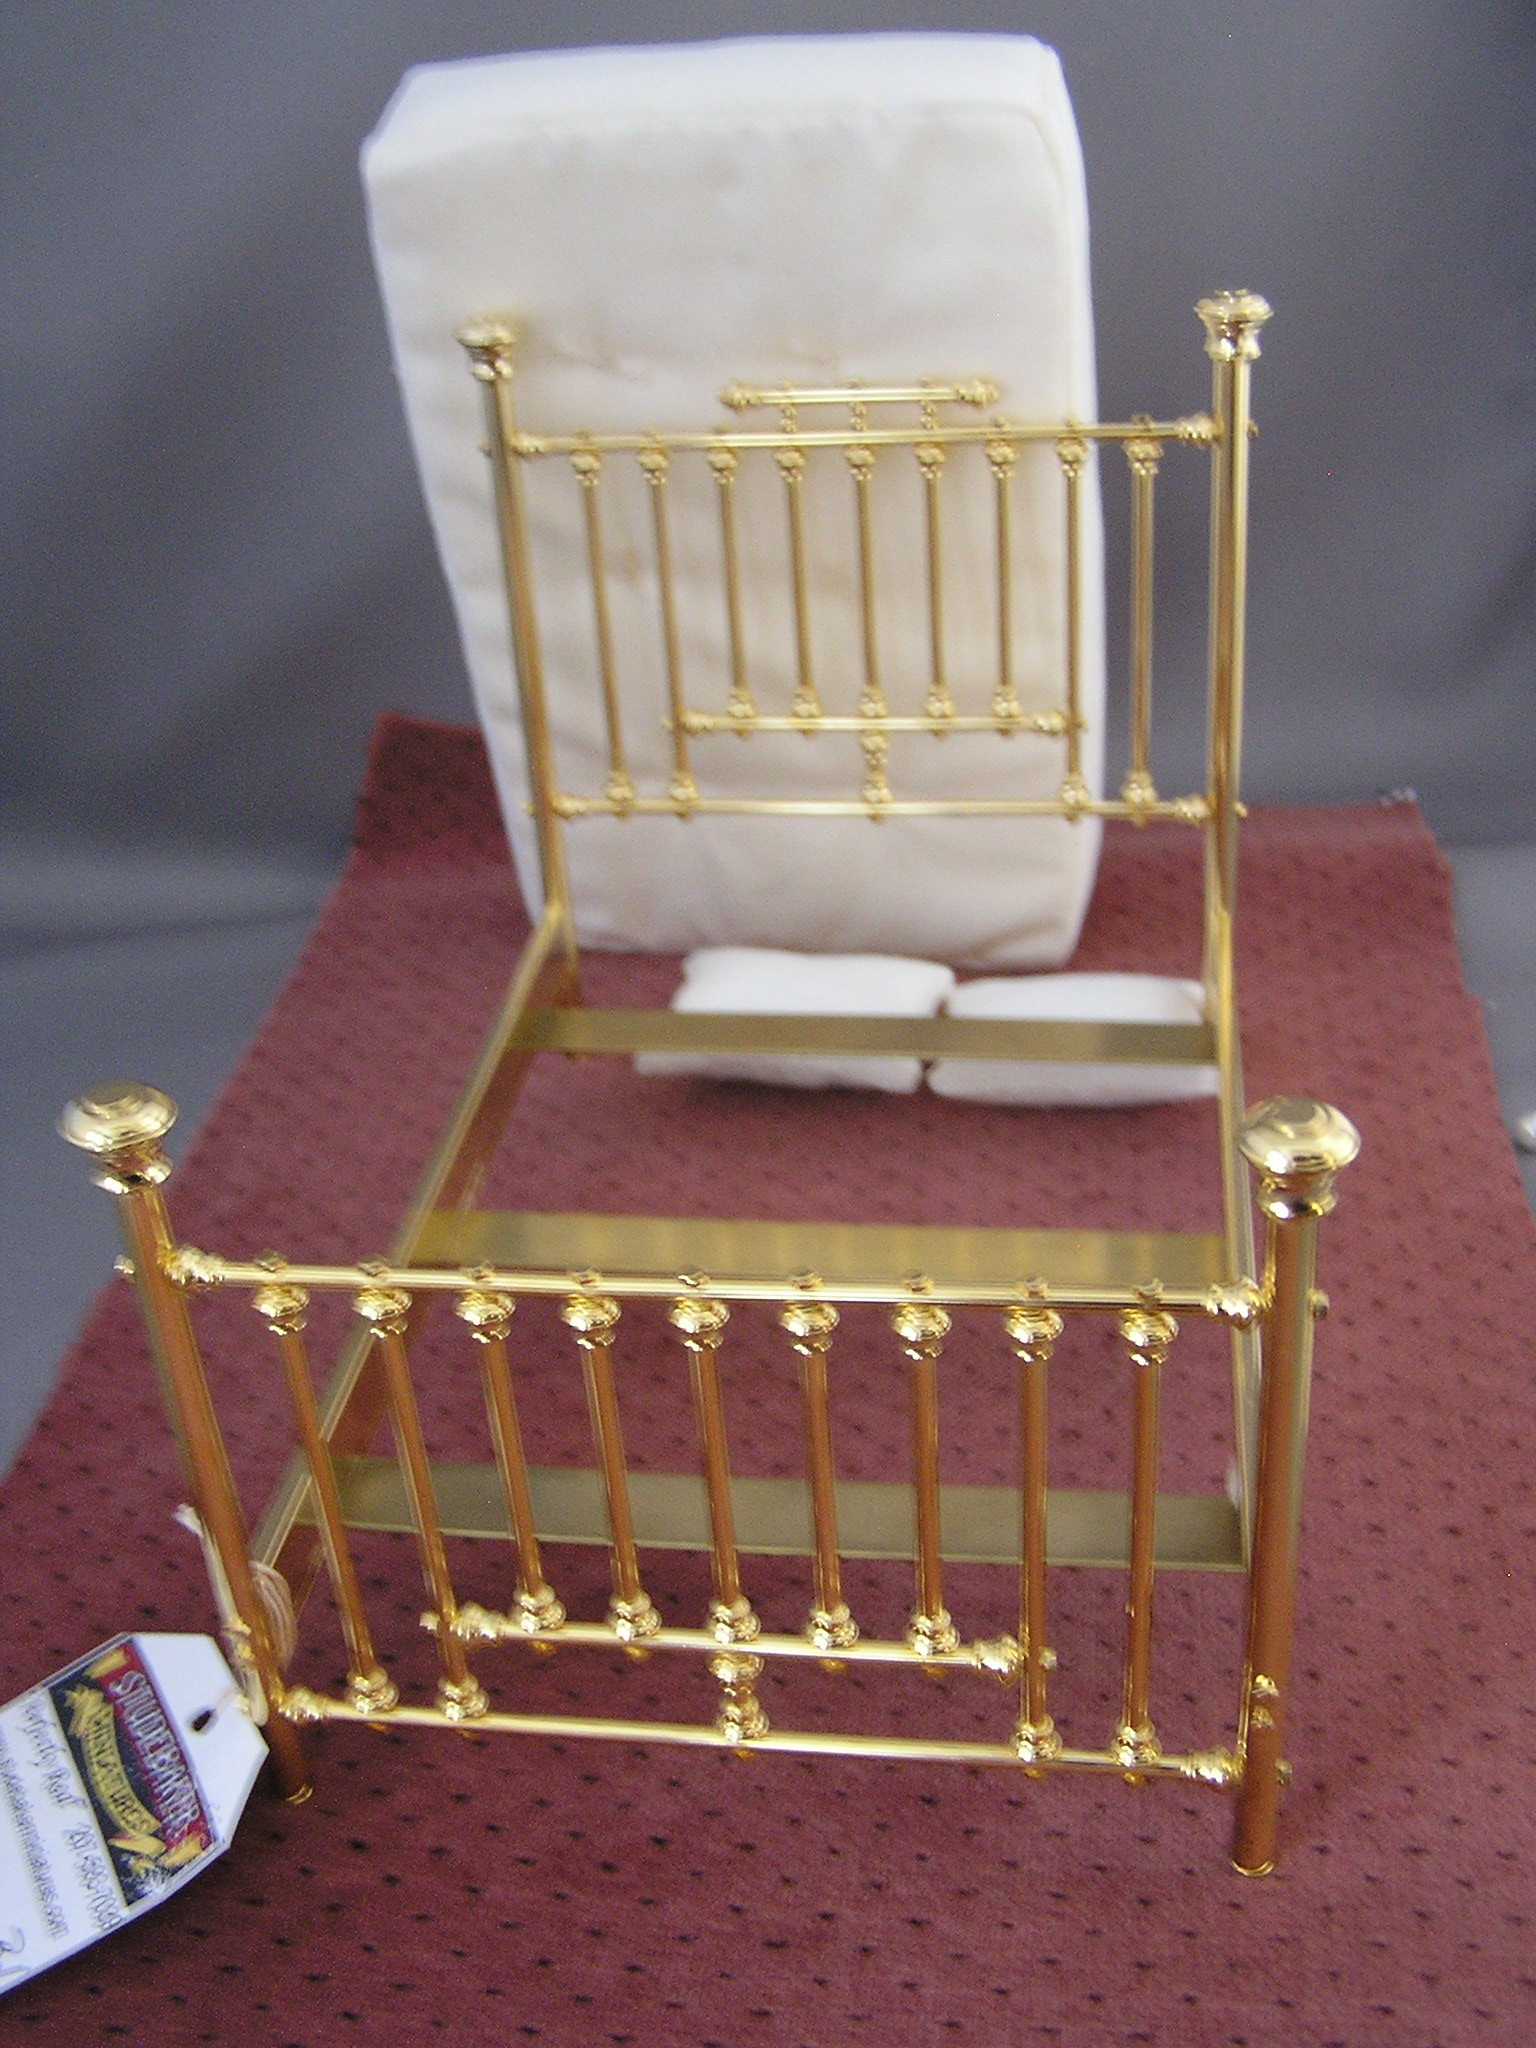 clarebell brass fancy bed twin new click to enlarge - Brass Beds